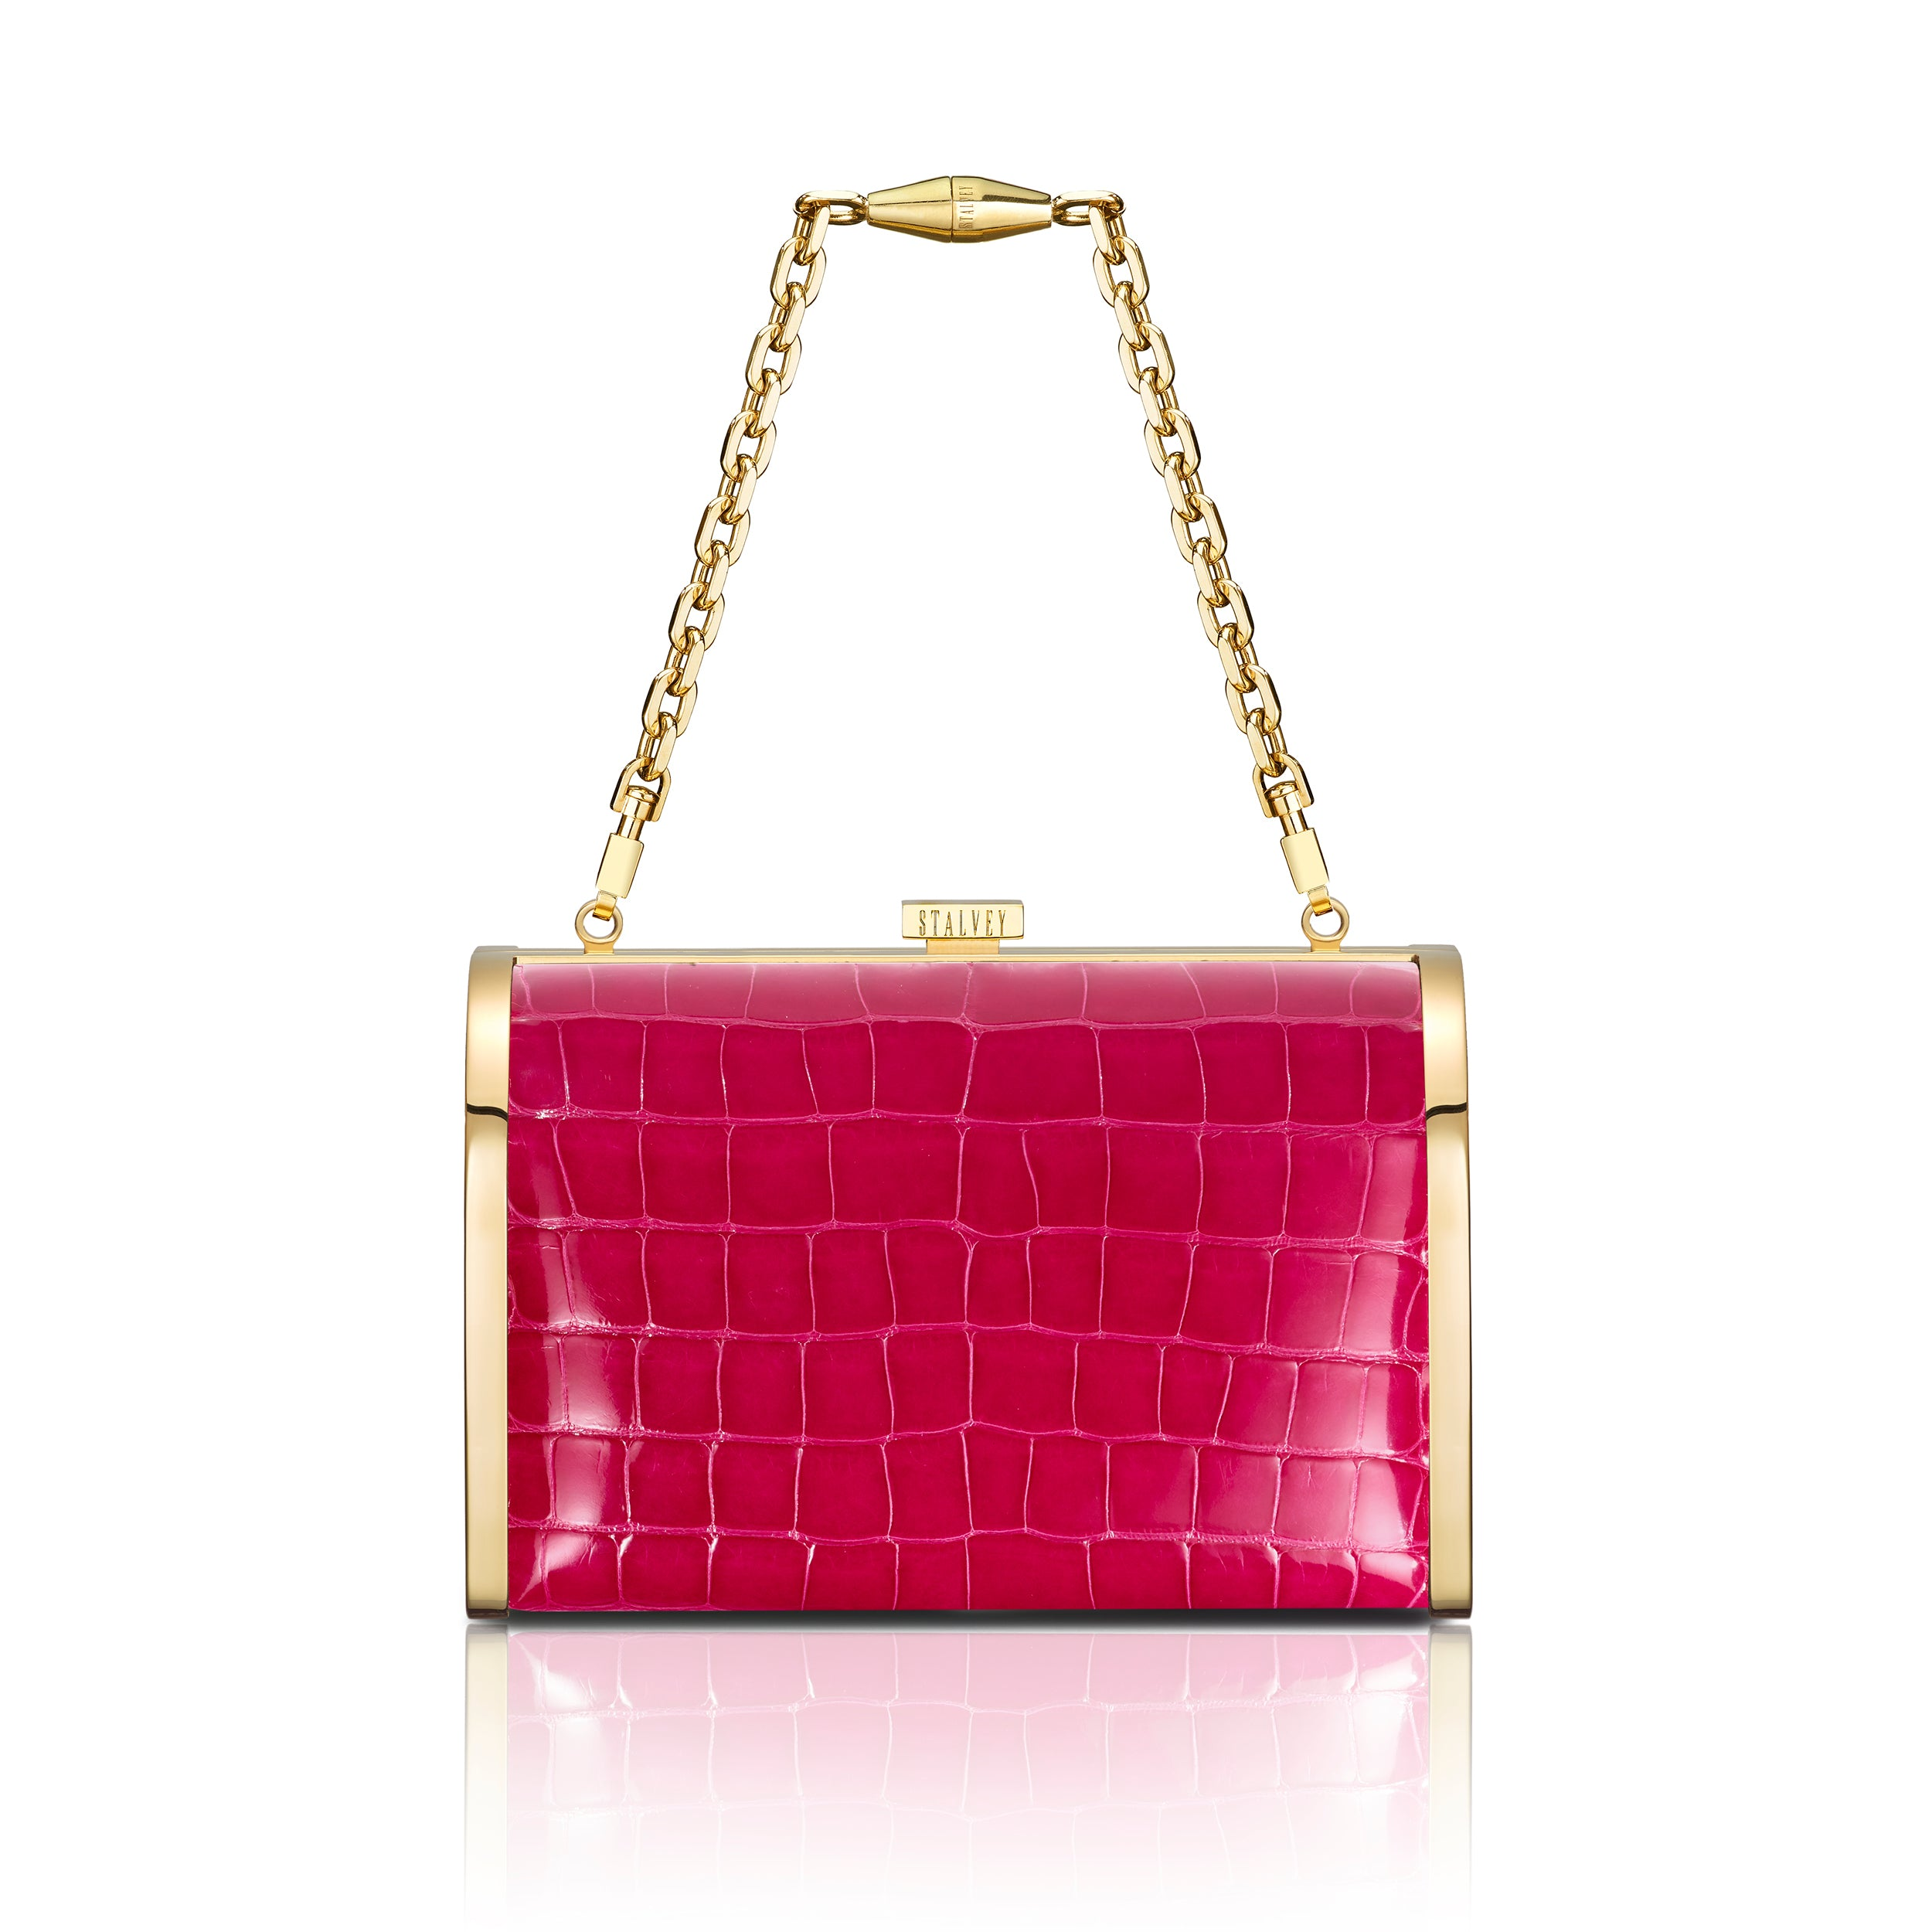 Rounded Clutch - Hot Pink Alligator